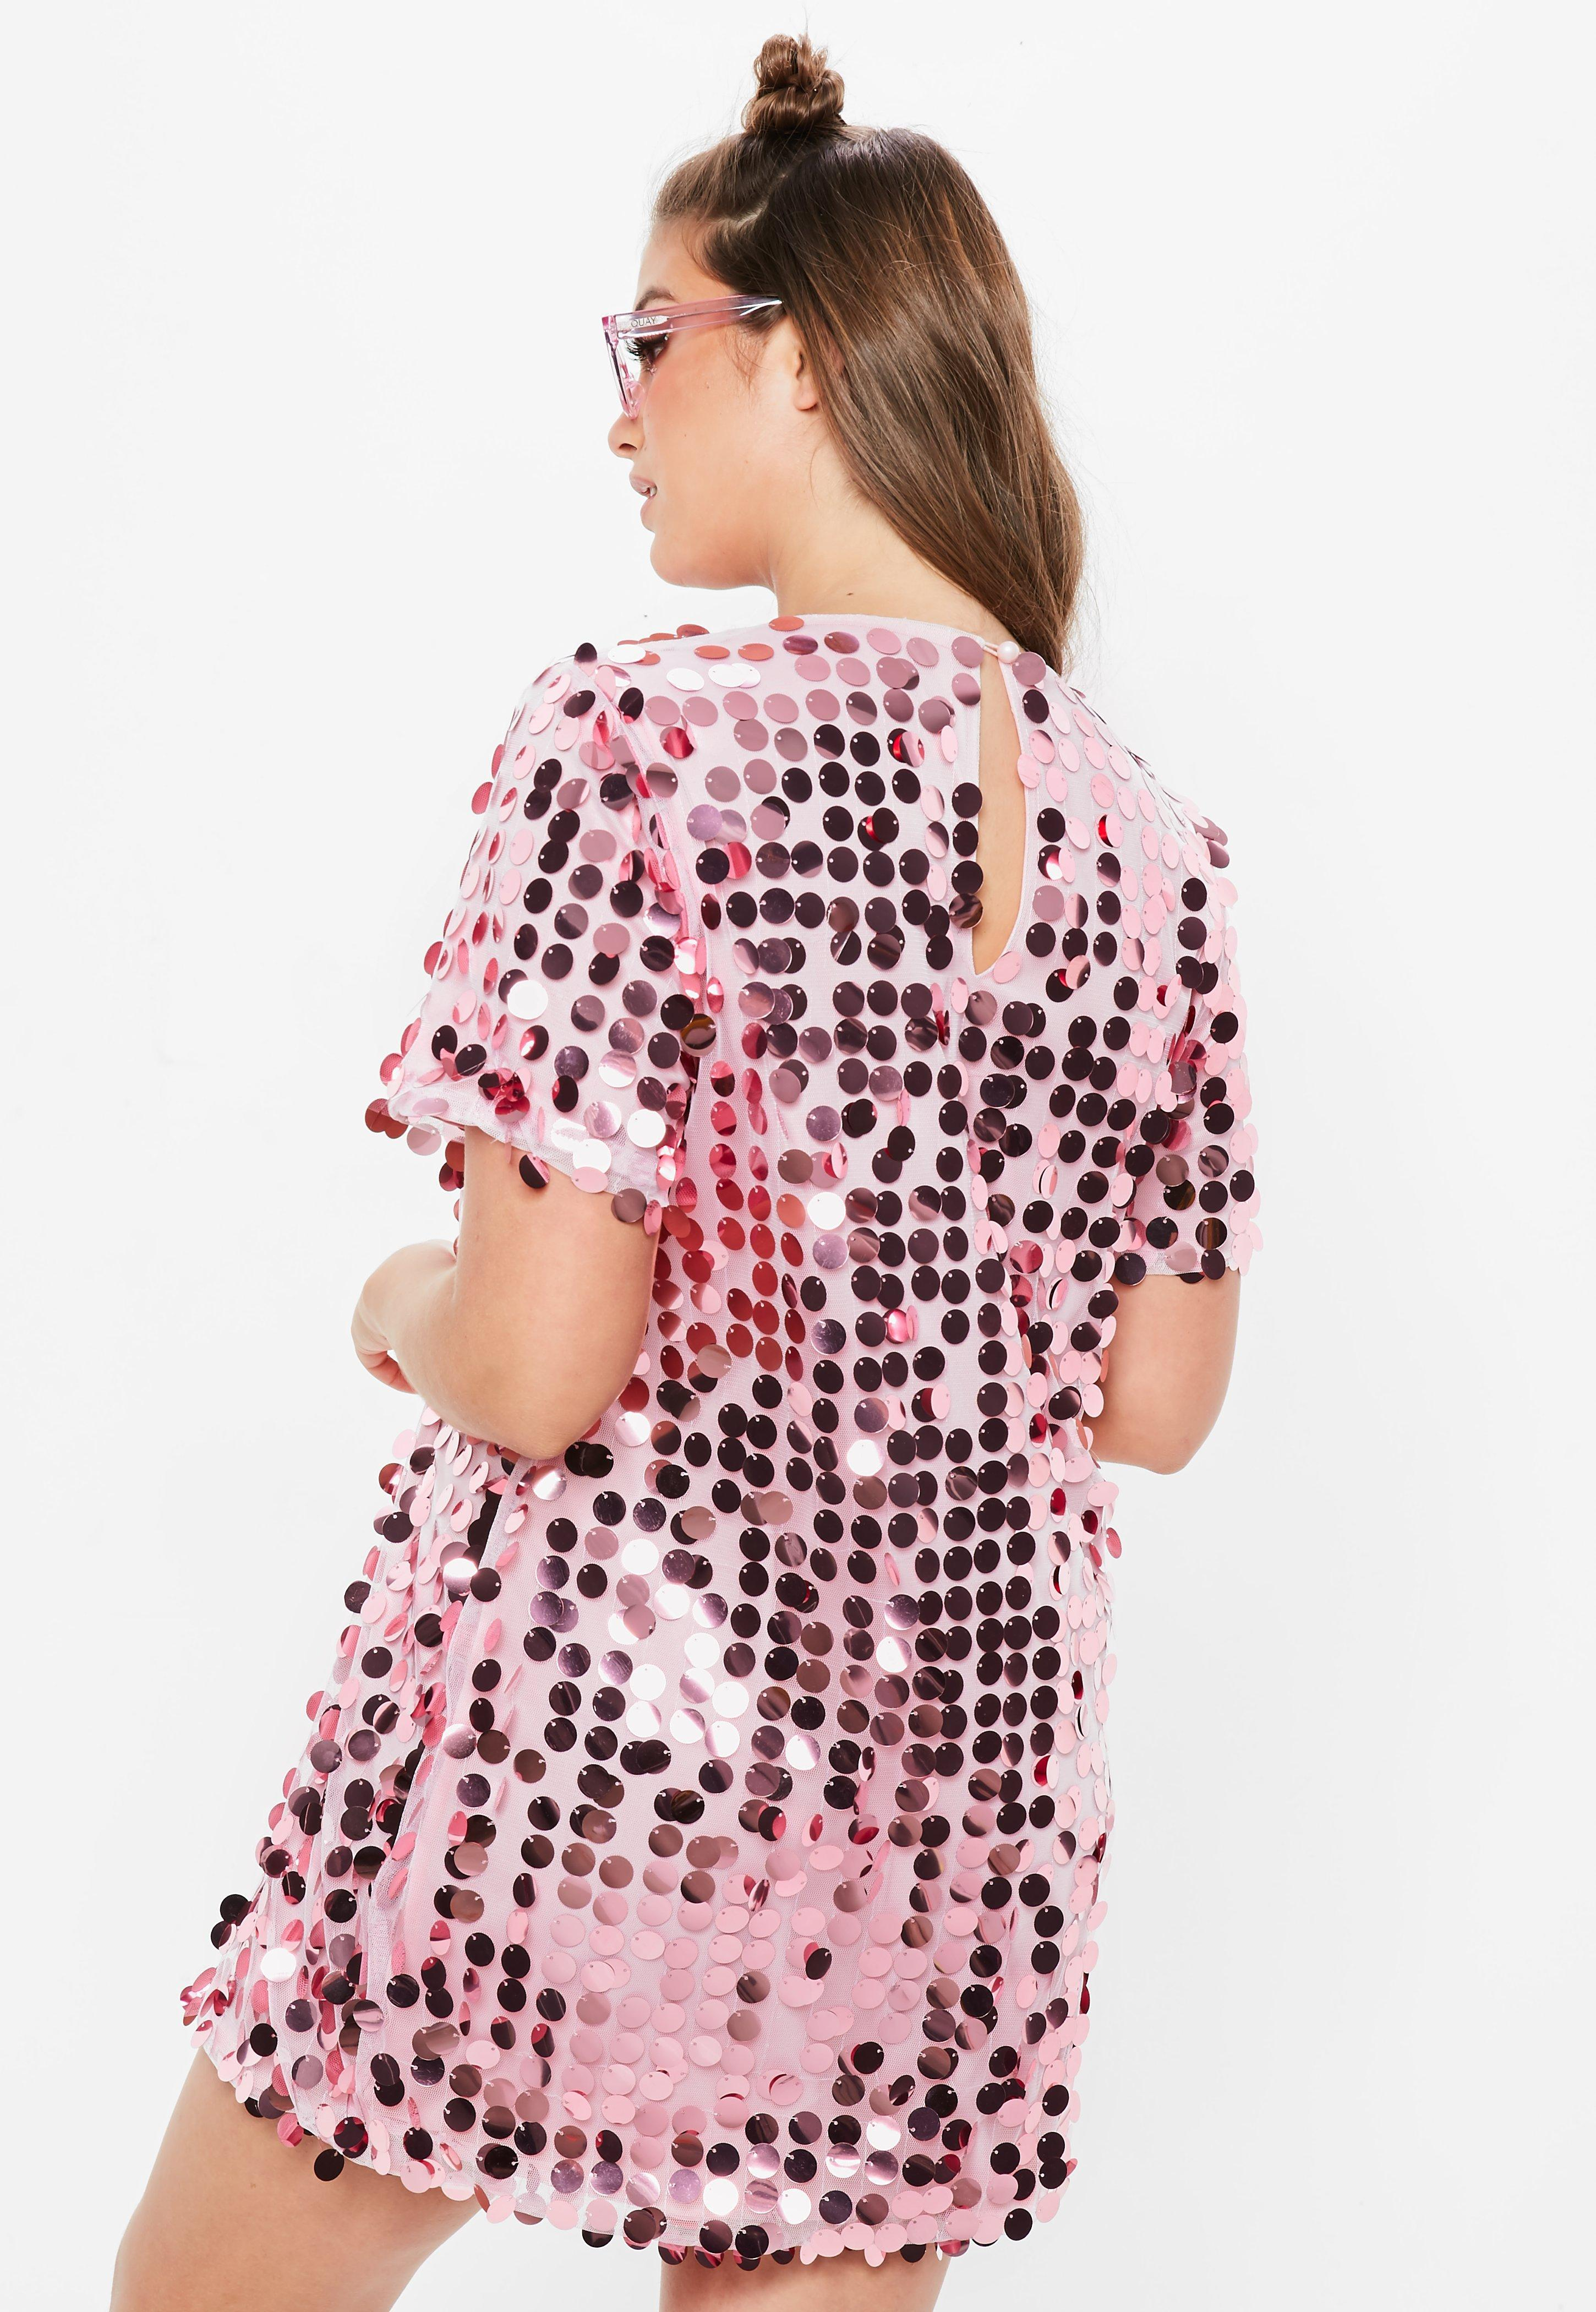 2b28aeb47704c Lyst - Missguided Plus Size Pink Sequin T-shirt Dress in Pink